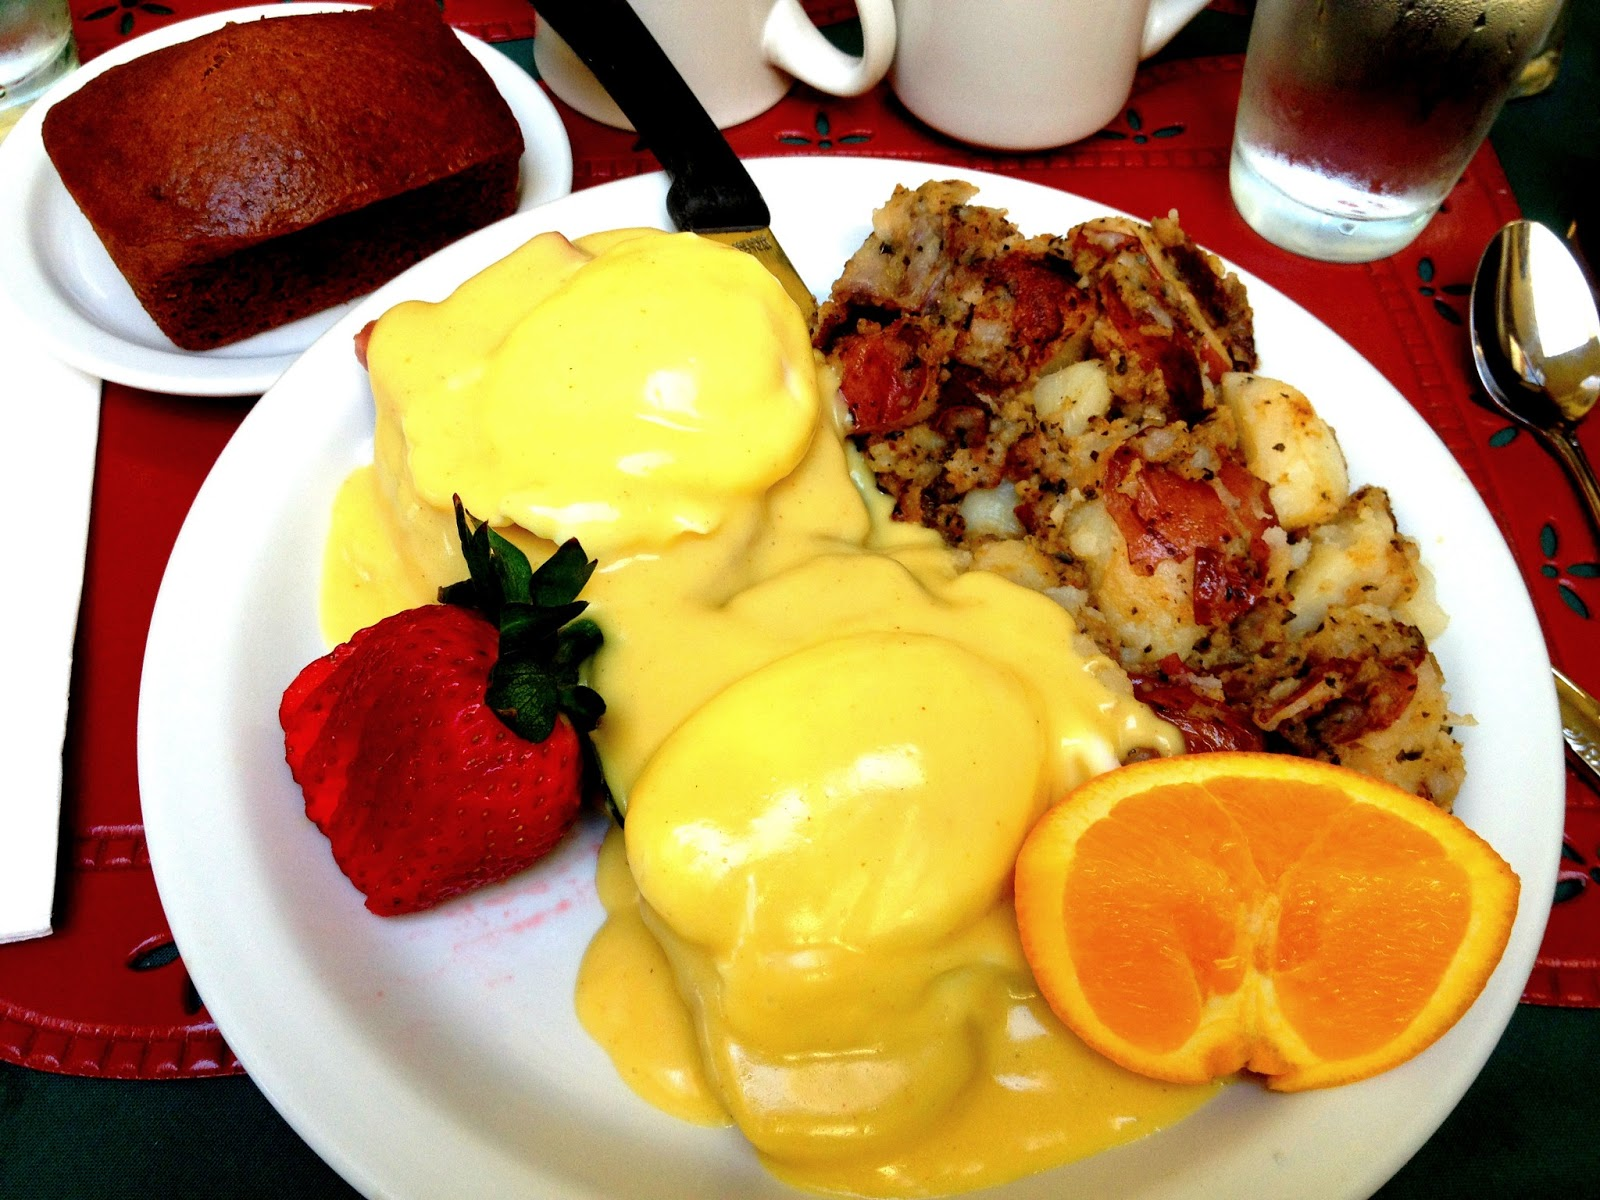 Egg's Benedict Special - with Corned Beef, potatoes, fresh fruit and a pumpkin raisin muffin loaf